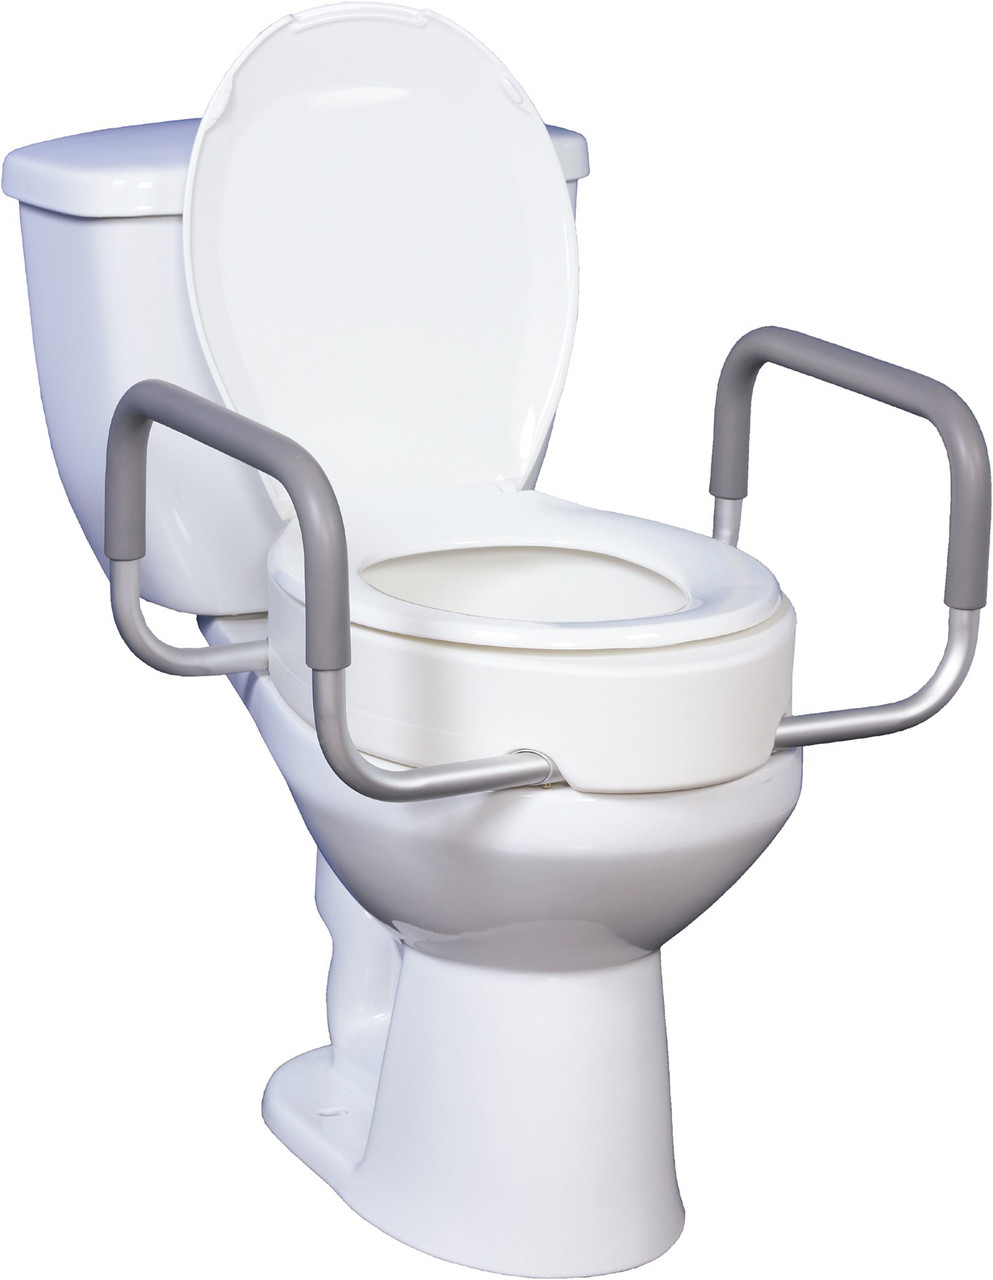 Phenomenal For Elongated Toilets Premium Toilet Seat With Removable Arms Dailytribune Chair Design For Home Dailytribuneorg